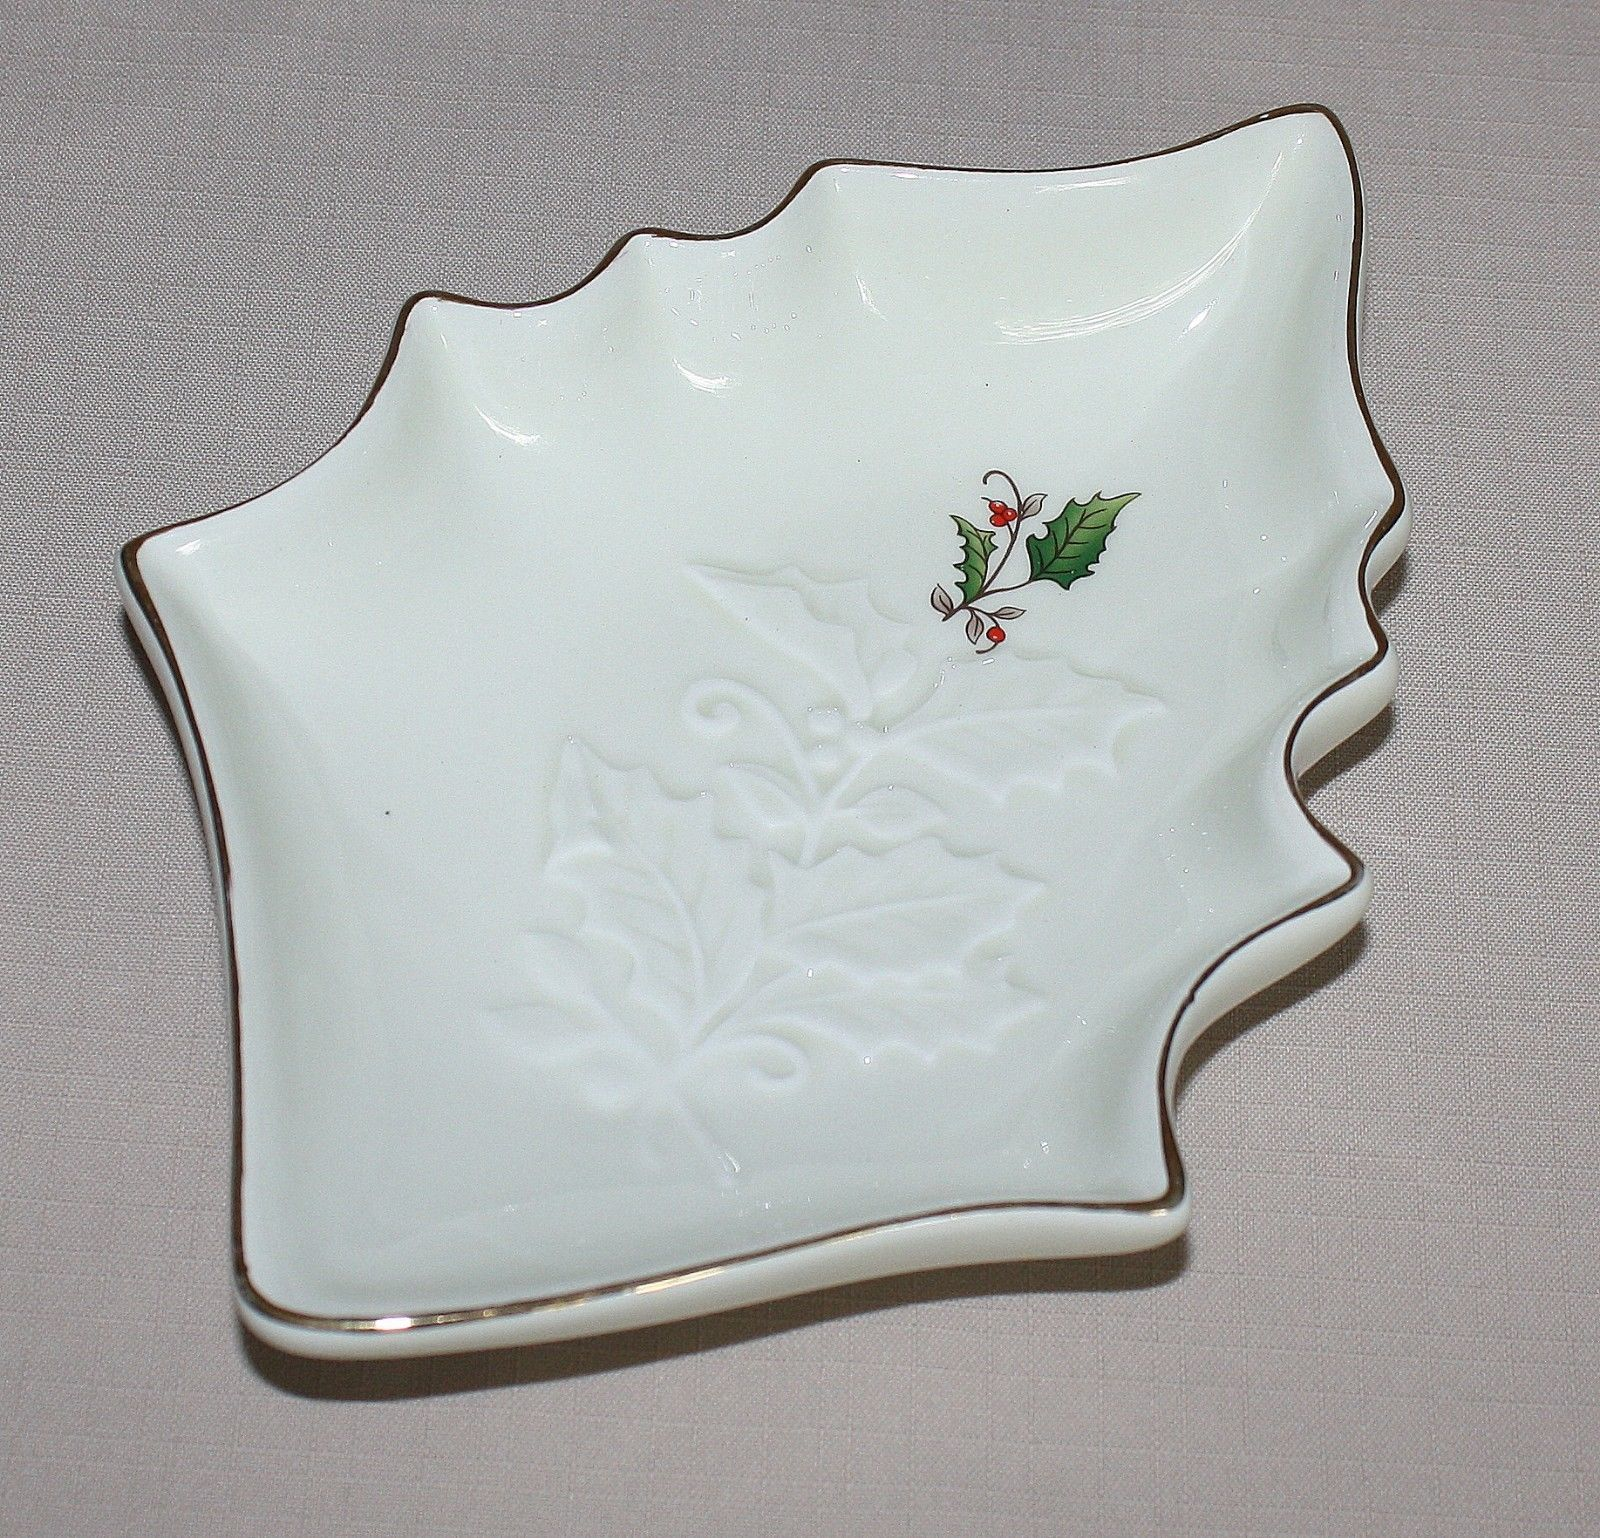 "Primary image for 9"" Home for the Holidays Holly Figural Christmas Candy Dish Ivory Embossed"